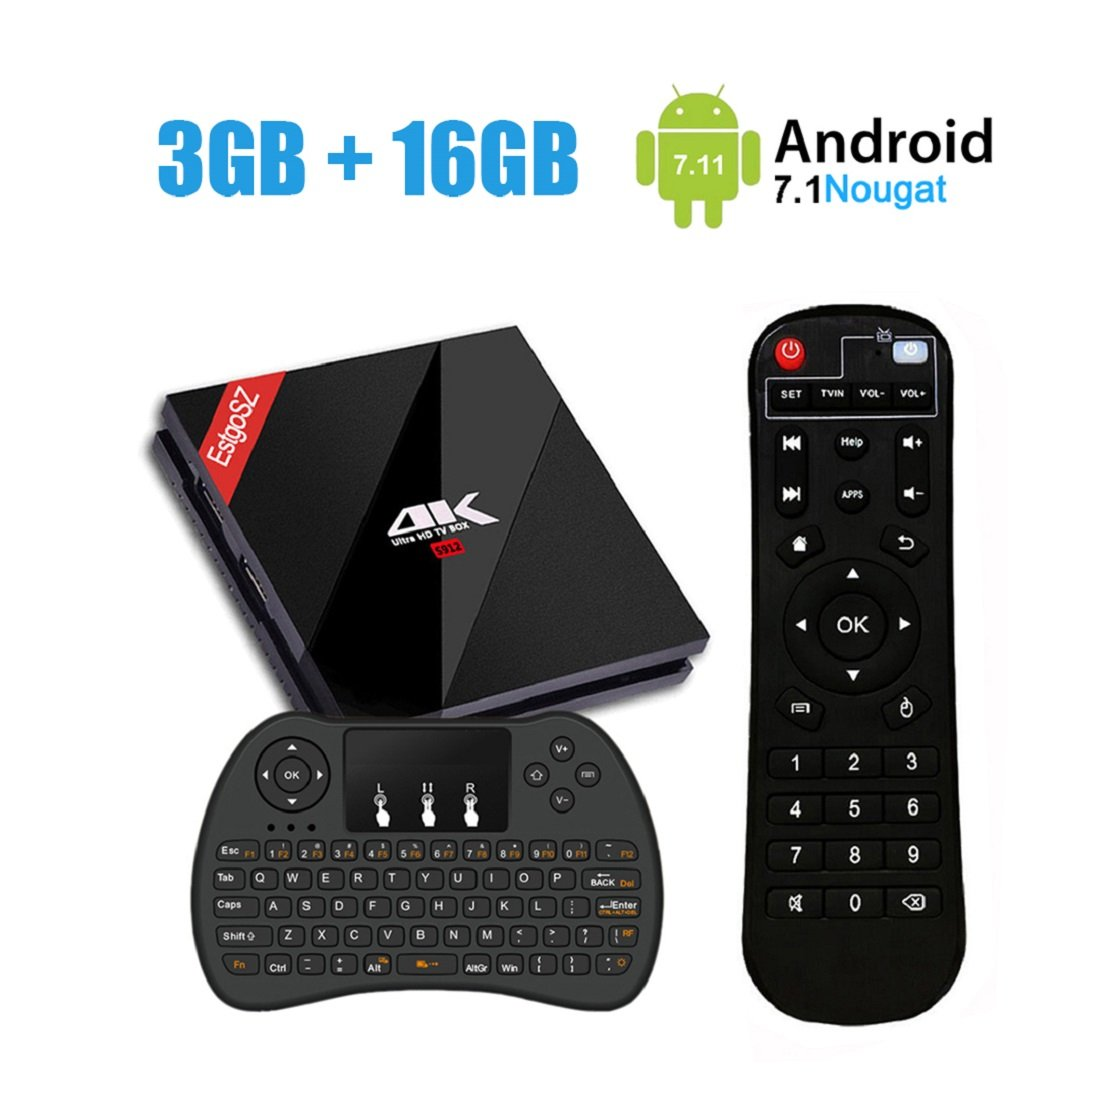 3GB 16GB Smart TV Box with Wireless Keyboard, EstgoSZ Android 7.1 Set Top Box Amlogic S912 Octa Core 64Bits Support 2.4G/5.8G WIFI 4K 3D Bluetooth 4.1/1000M LAN by EstgoSZ